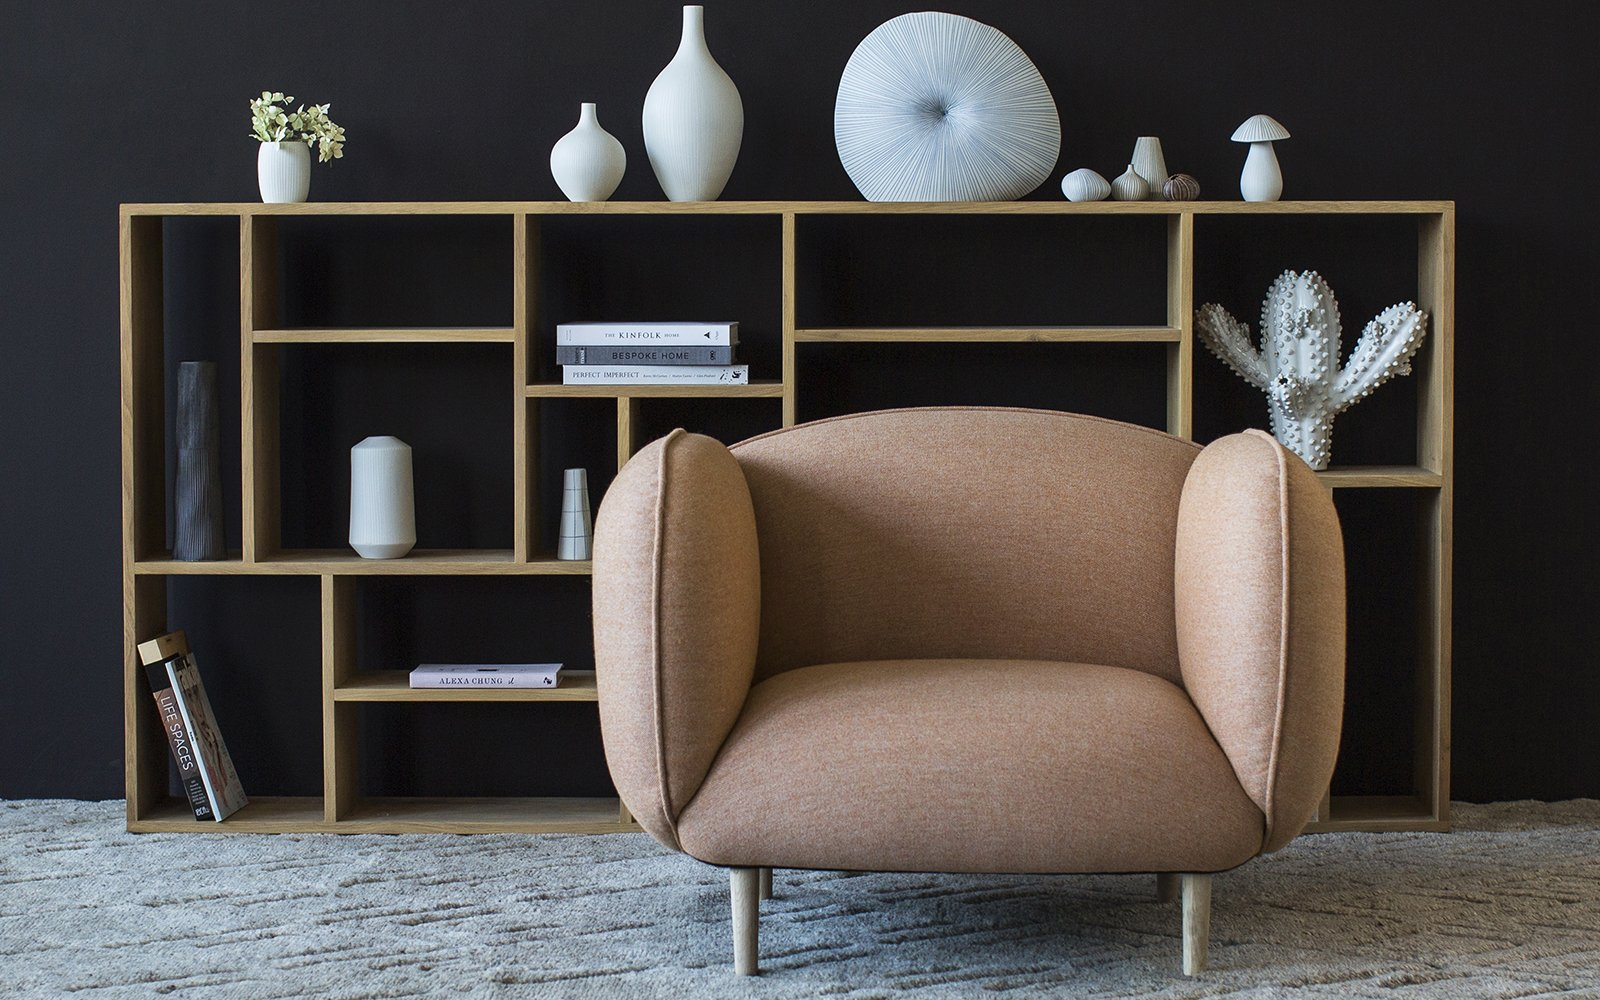 The One Piece of Furniture that Holds a Special Place in Designers' Hearts